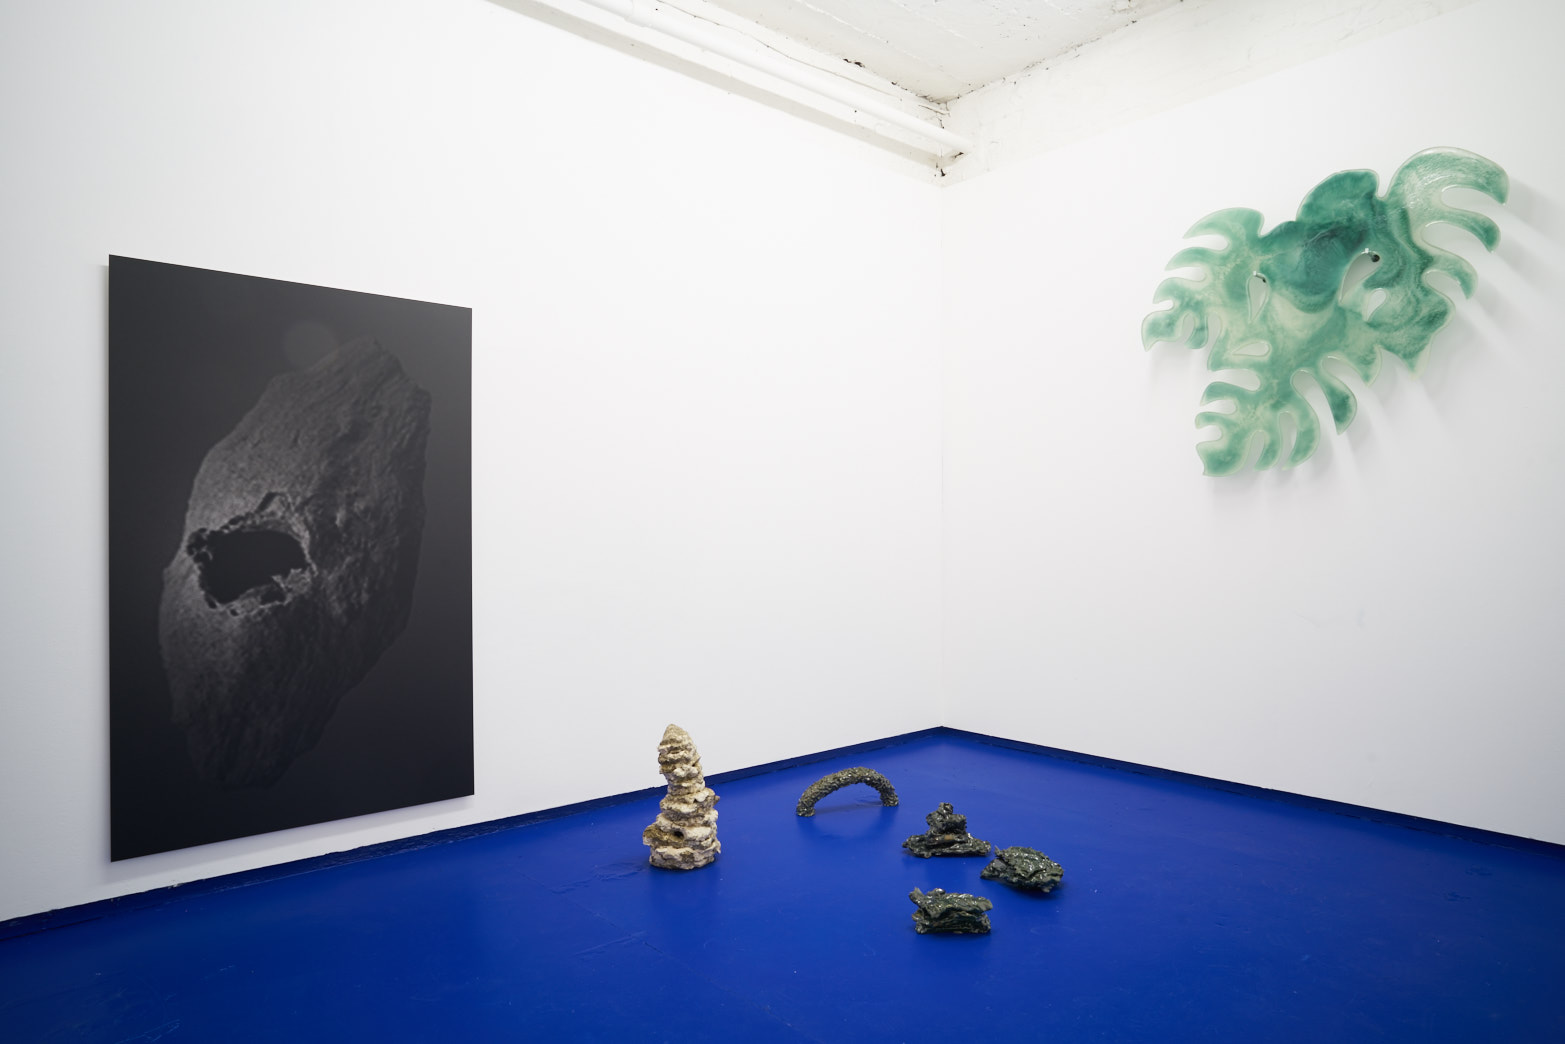 Tropical Hangover, Installation view with works by Salvatore Arancio and Zuzanna Czebatul. Tenderpixel.